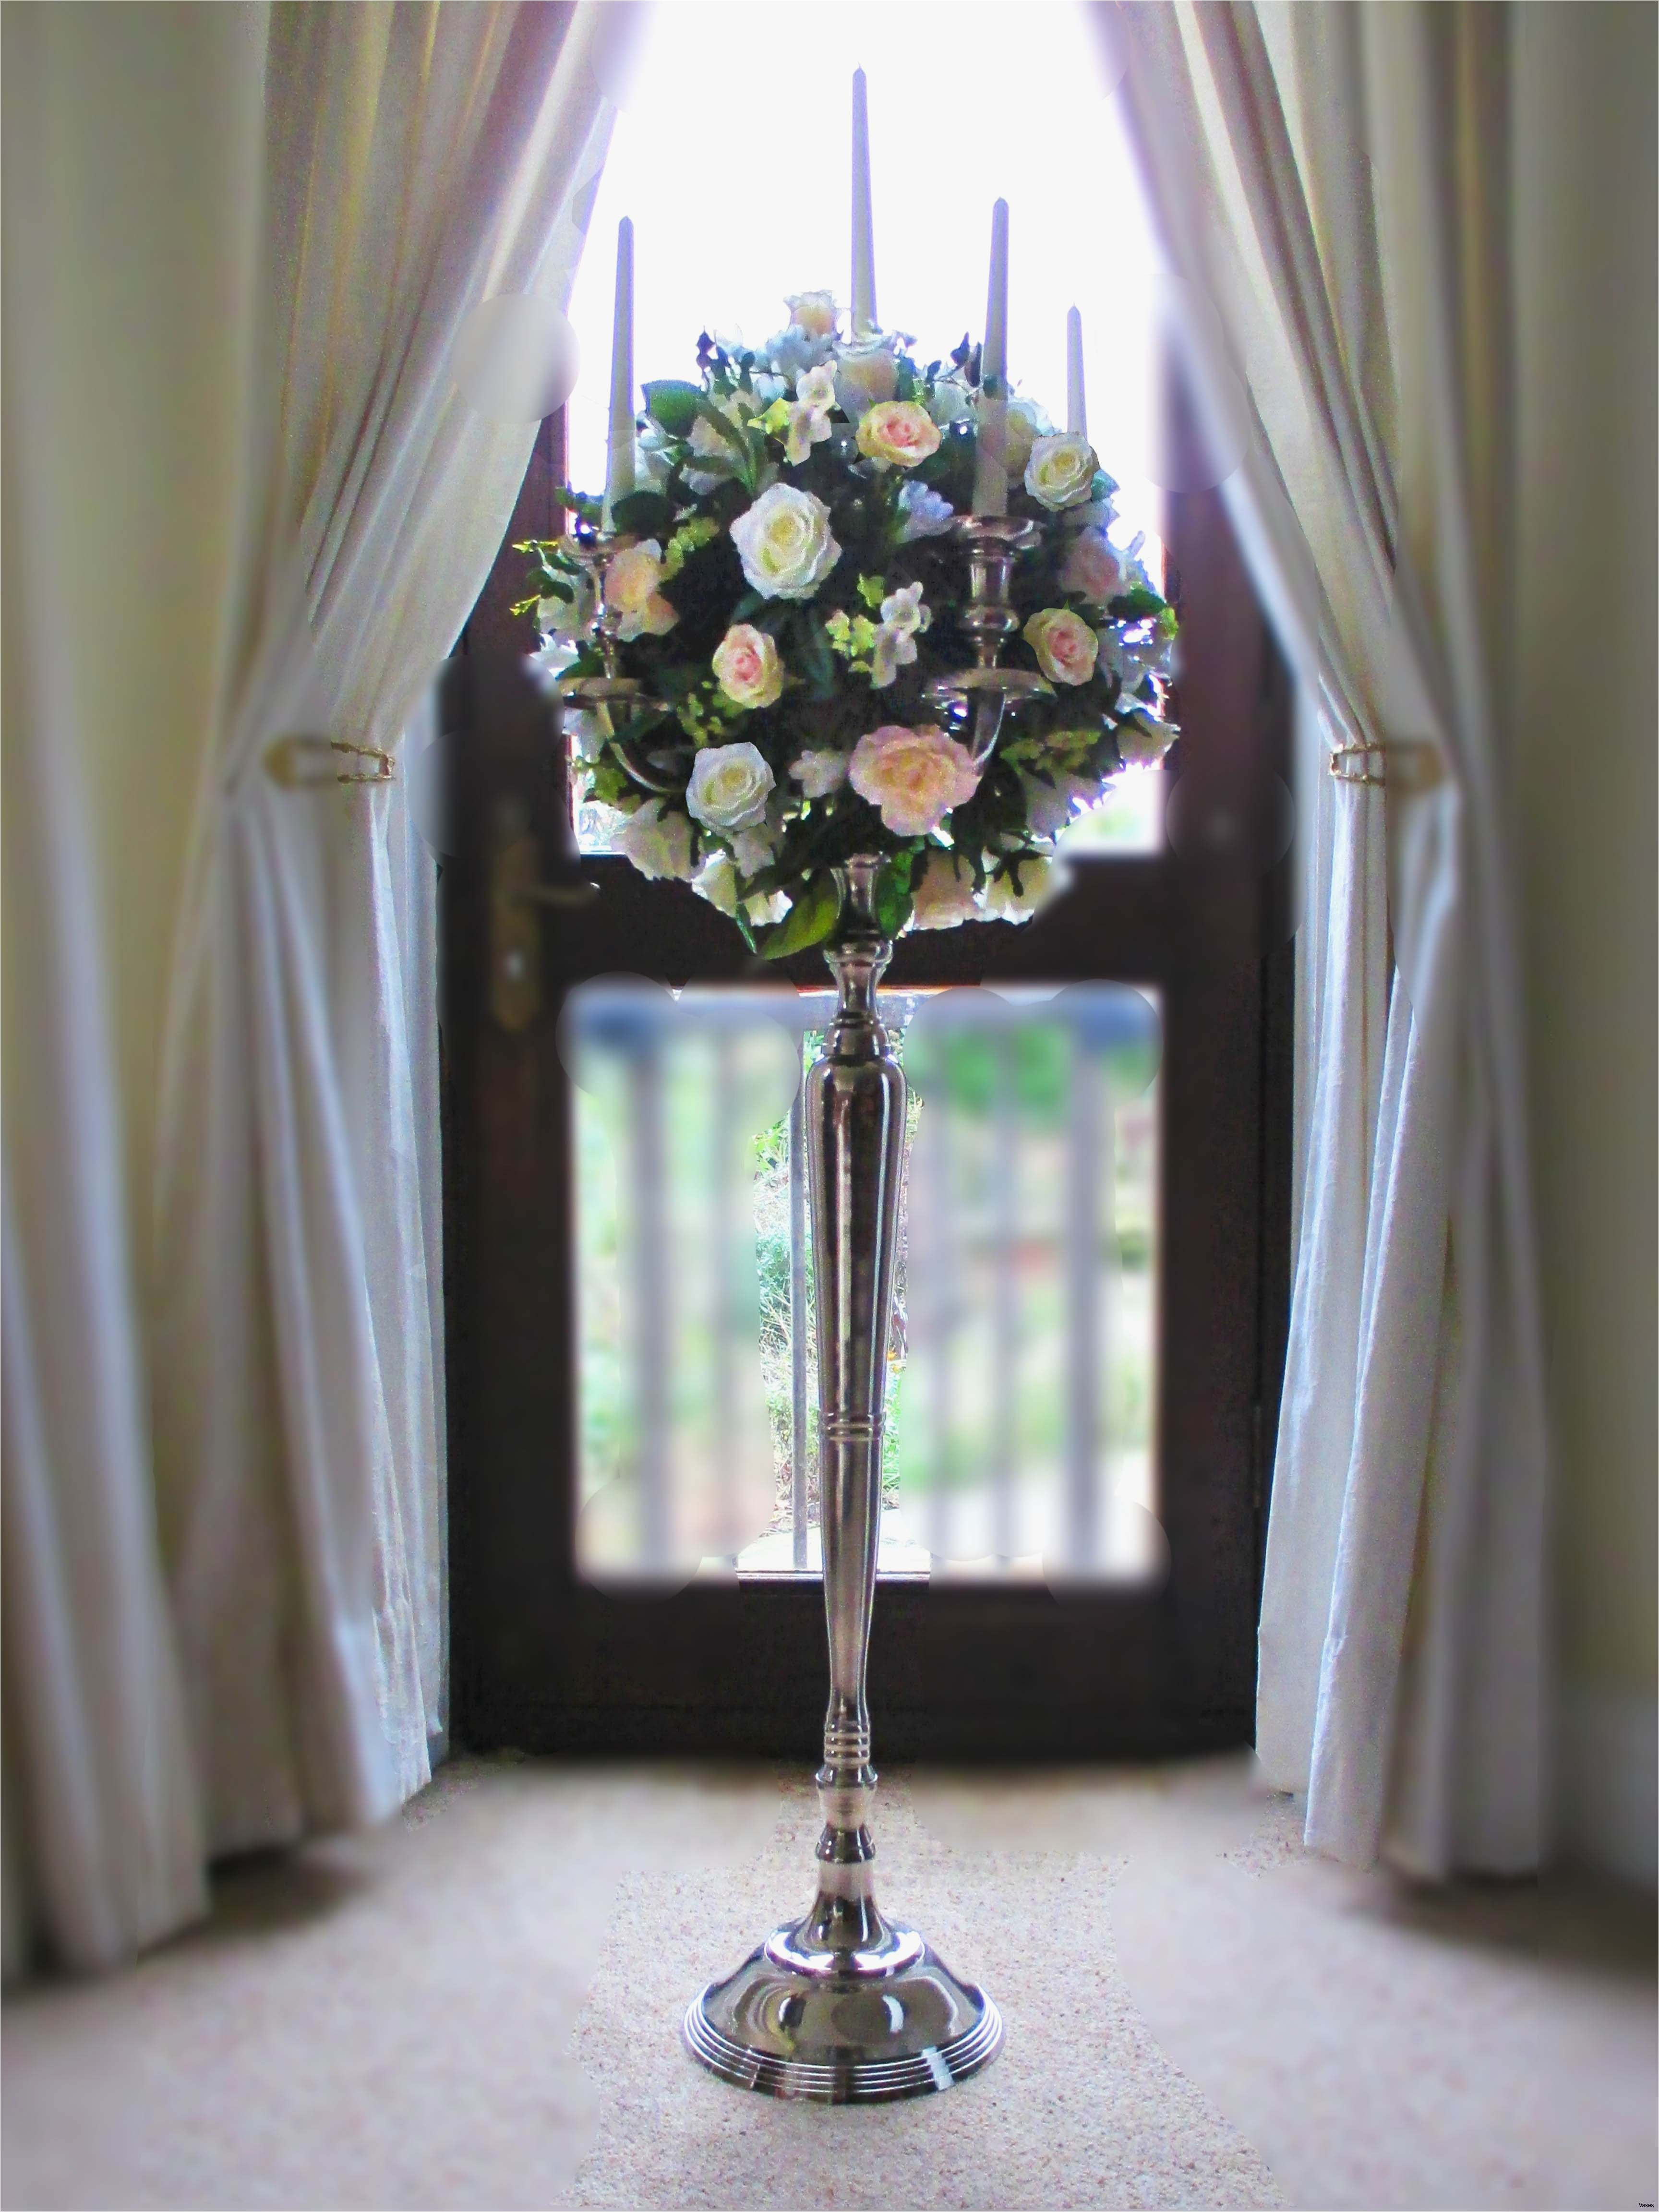 Small Table Vases Of Cheap Outside Wedding Ideas Contemporary Cheap Wedding Bouquets Throughout Cheap Outside Wedding Ideas Unique Cheap Wedding Bouquets Packages 5397h Vases Silver Vase Leeds I 0d